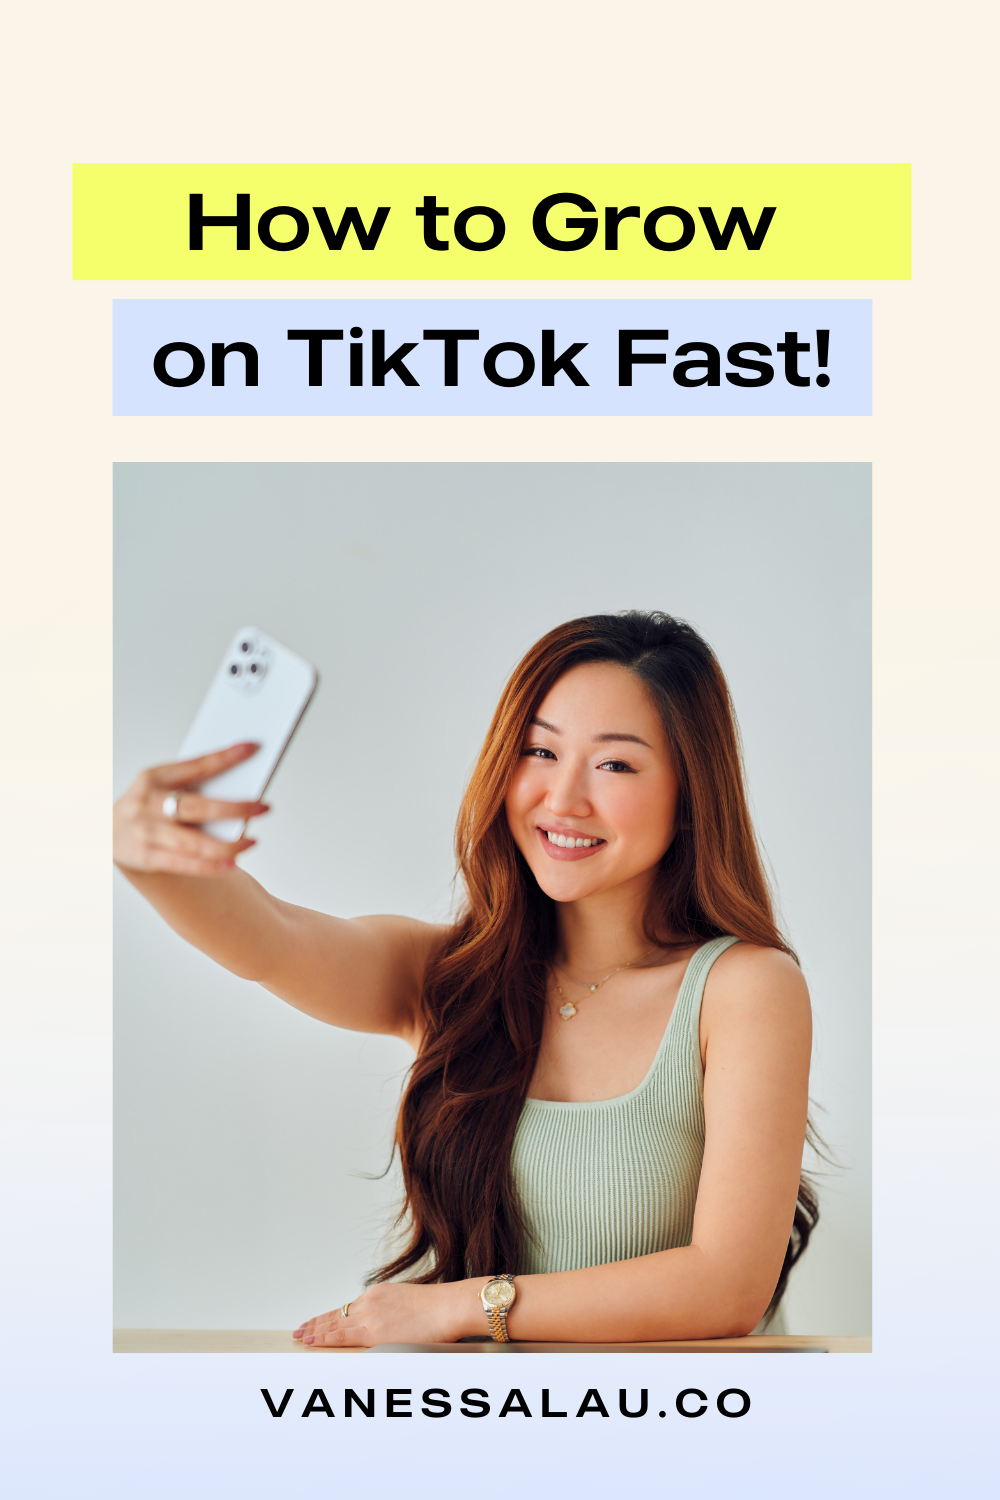 How to Grow on TikTok in 2021 (0 to 500,000 Followers Fast)